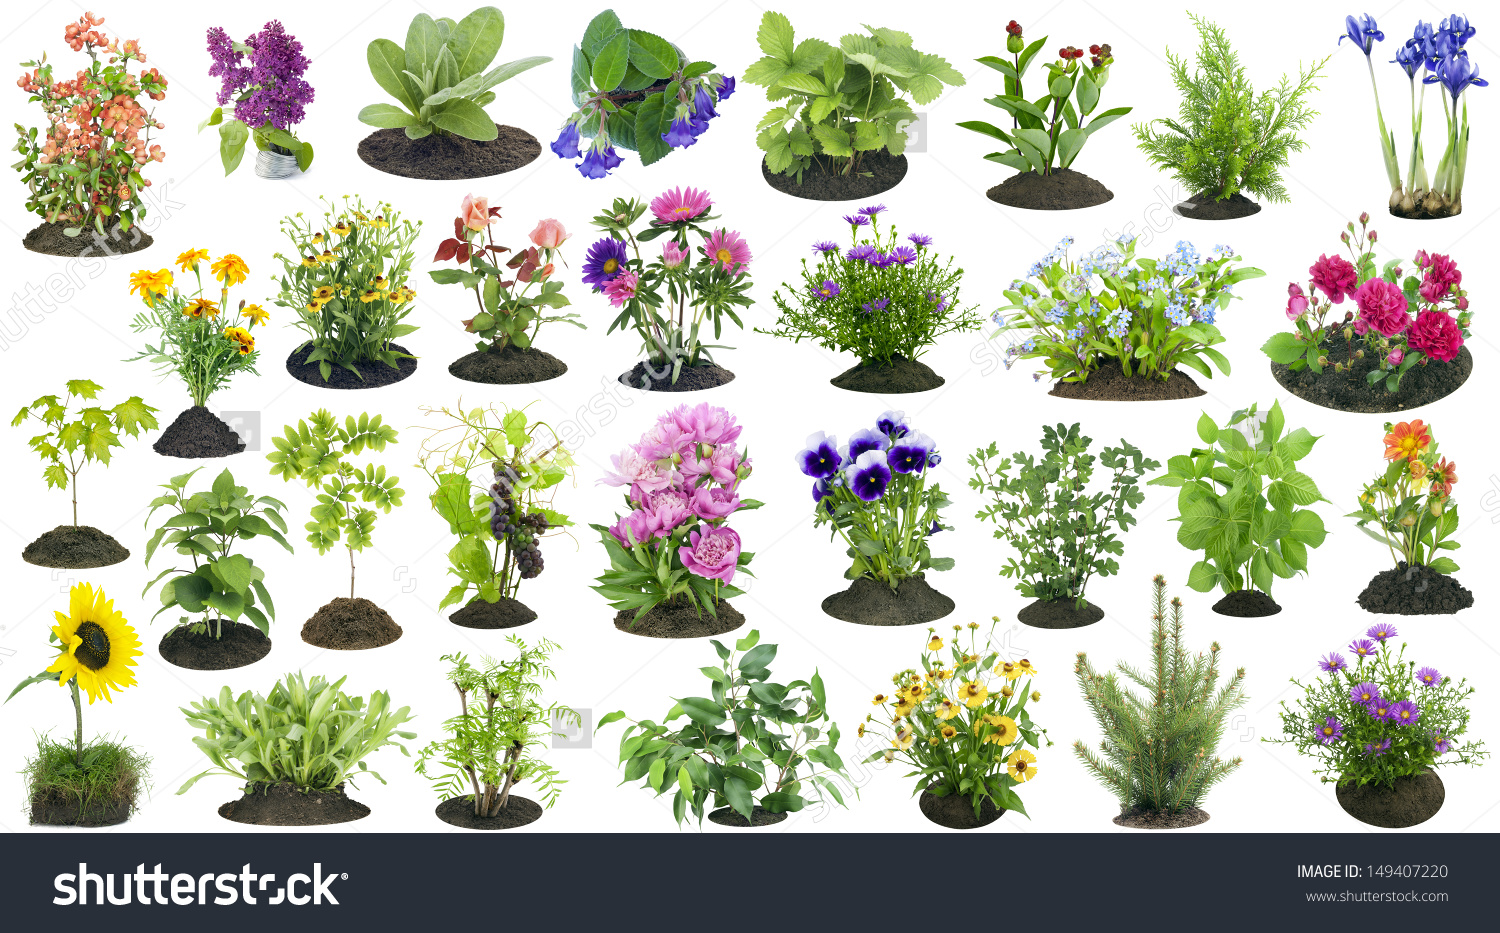 Garden plants clipart clipground for Easy to care for outdoor flowering plants